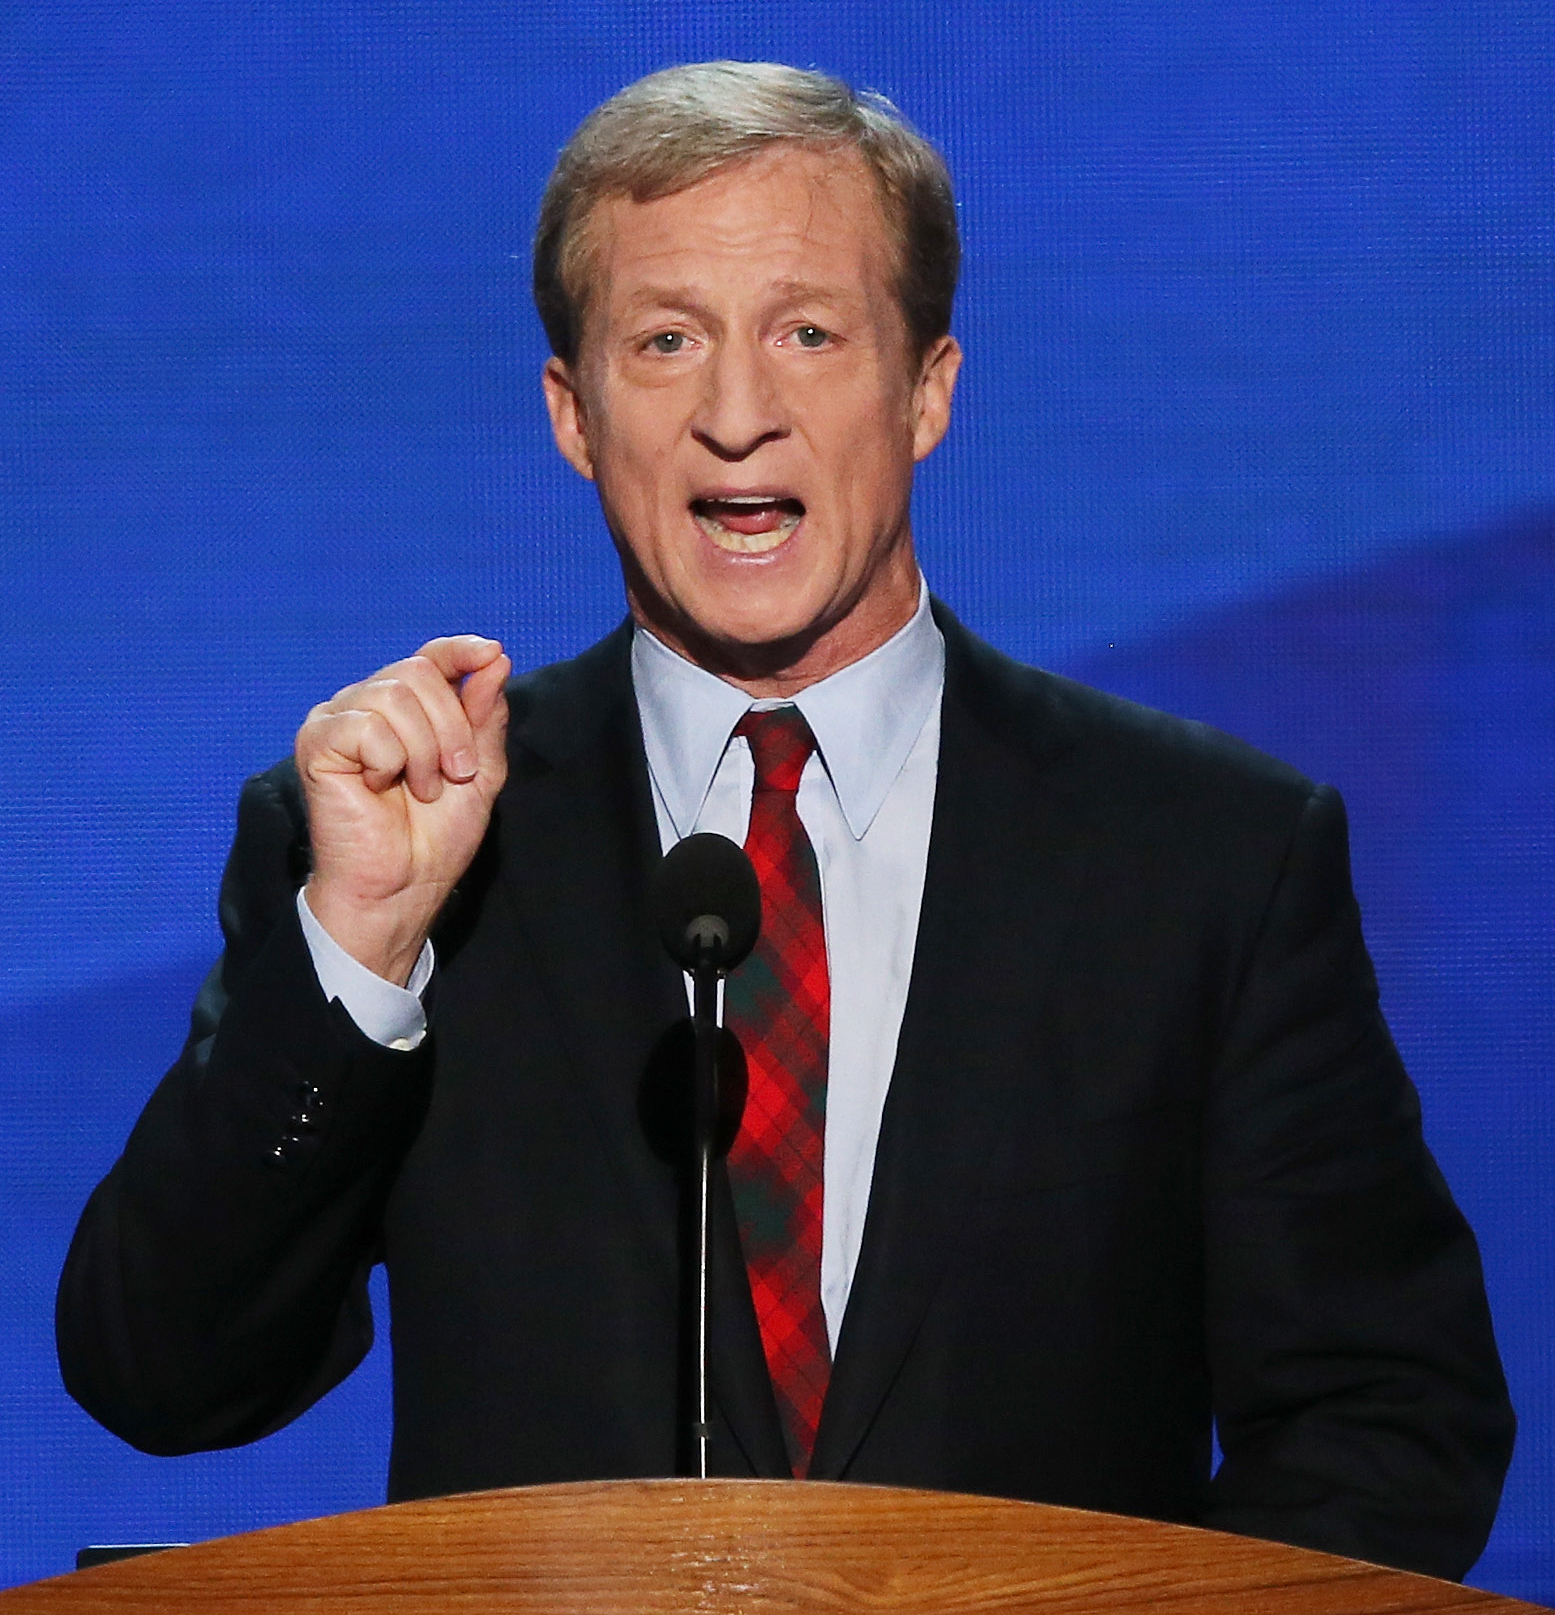 Image: Co-Founder of Advanced Energy Economy Tom Steyer speaks during day two of the Democratic National Convention